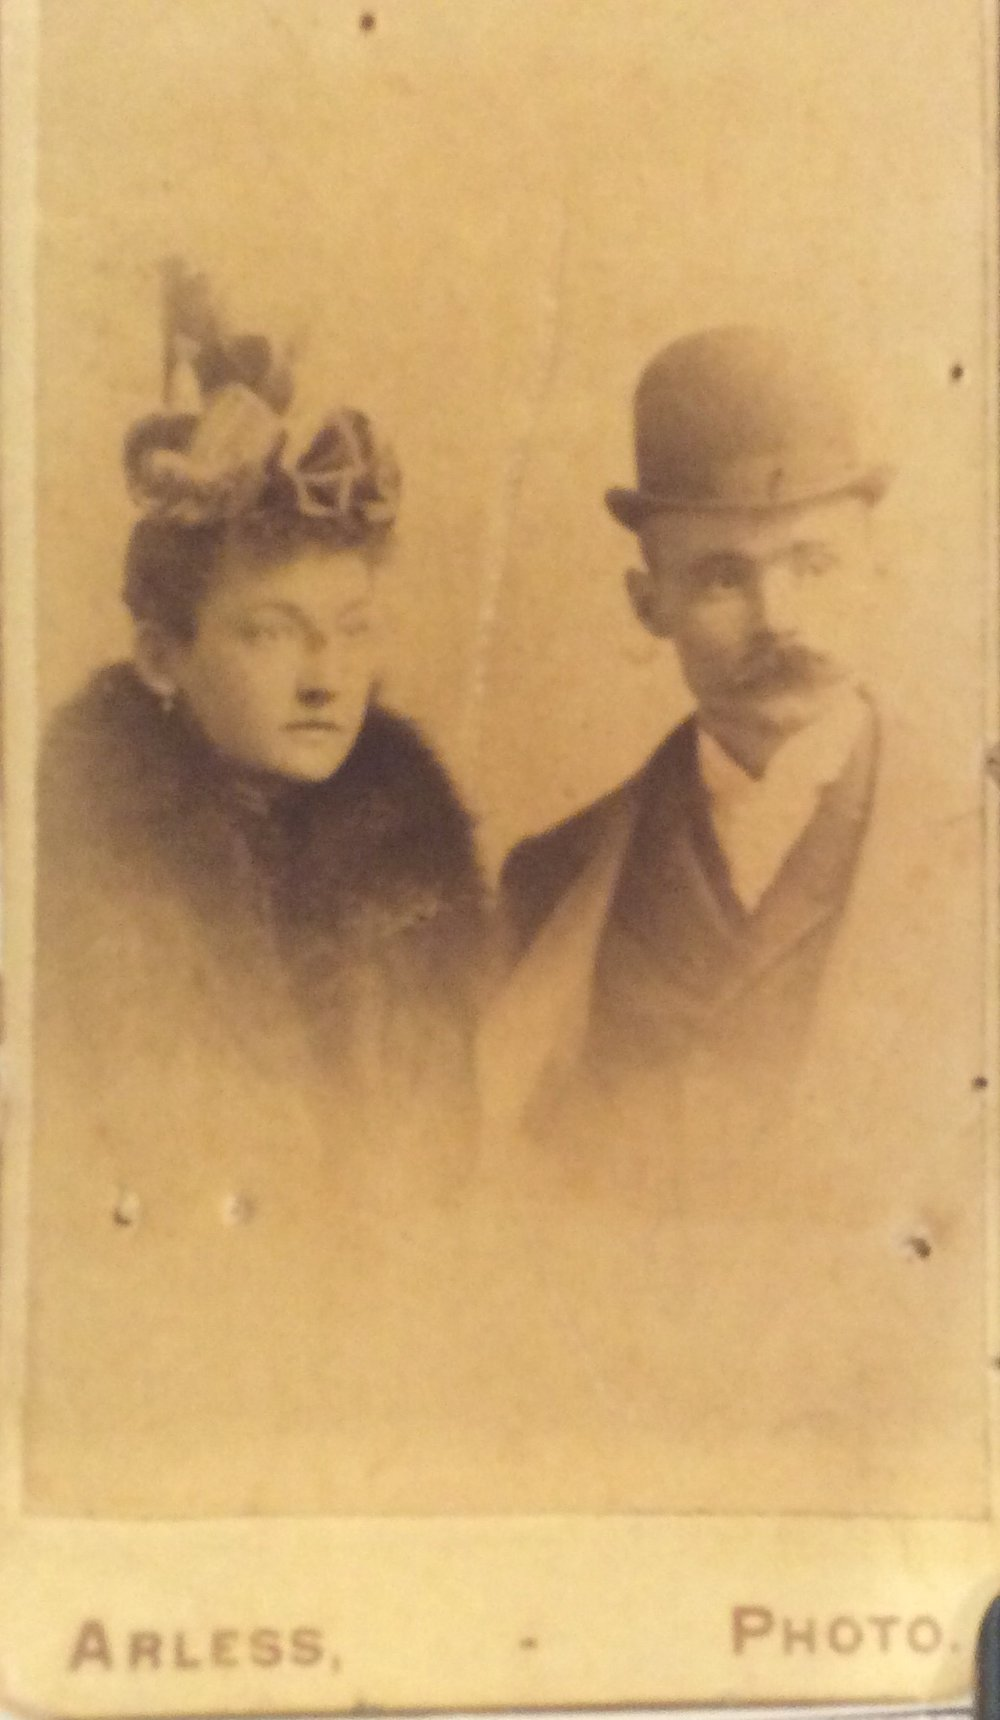 John Dempsey and Mary Elizabeth Shannon